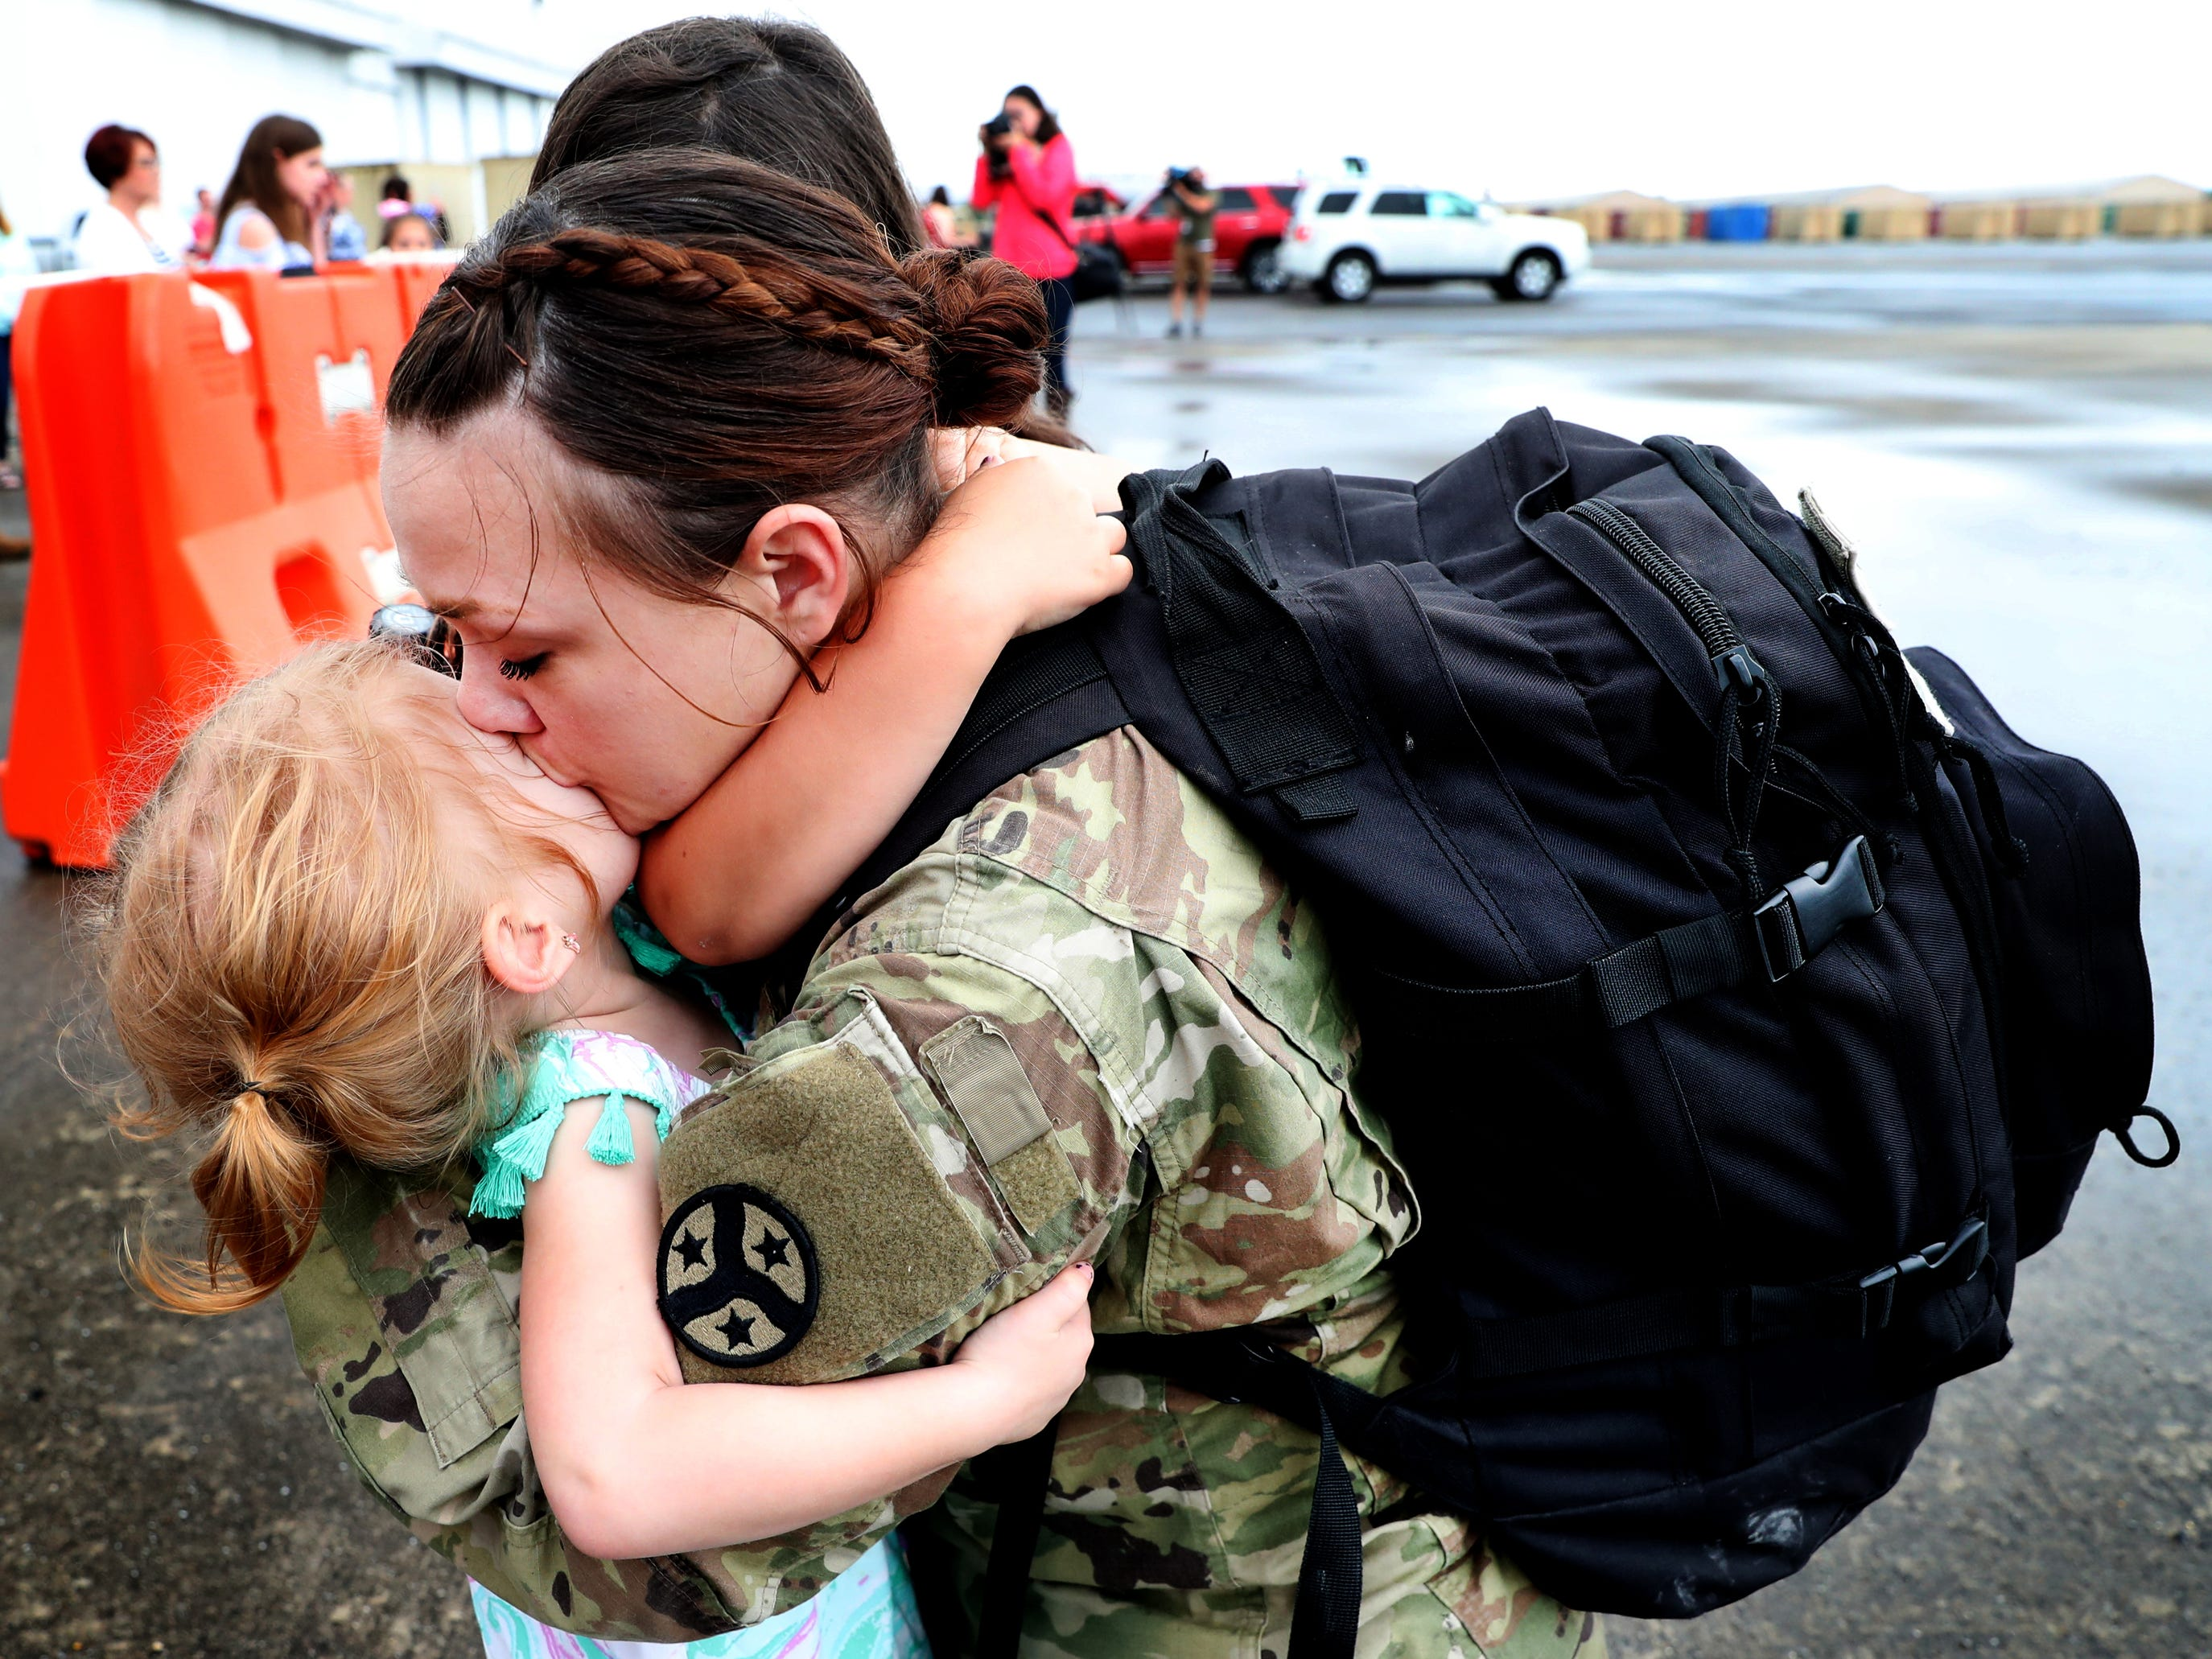 Specialist Katie Byrd, with the 278th ACR kisses her daughter Rosie Byrd, 3, as her other daughter Natalie Byrd, 6 hugs her neck after she gets off the plane at the Volunteer Training Site in Smyrna, from a 9 month overseas deployment on Thursday, May 9, 2019.